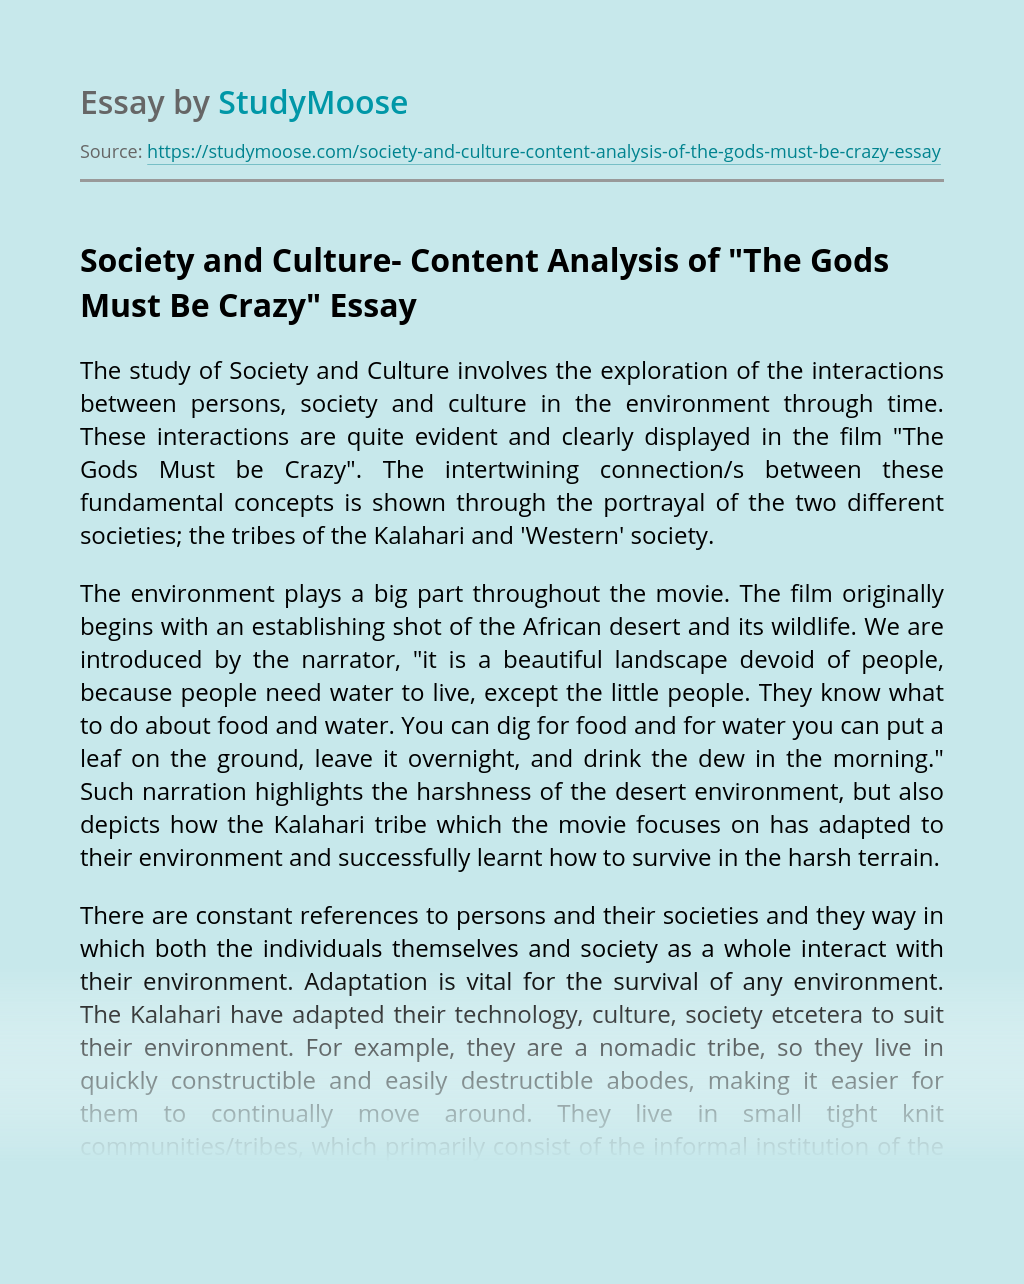 Society and Culture- Content Analysis of